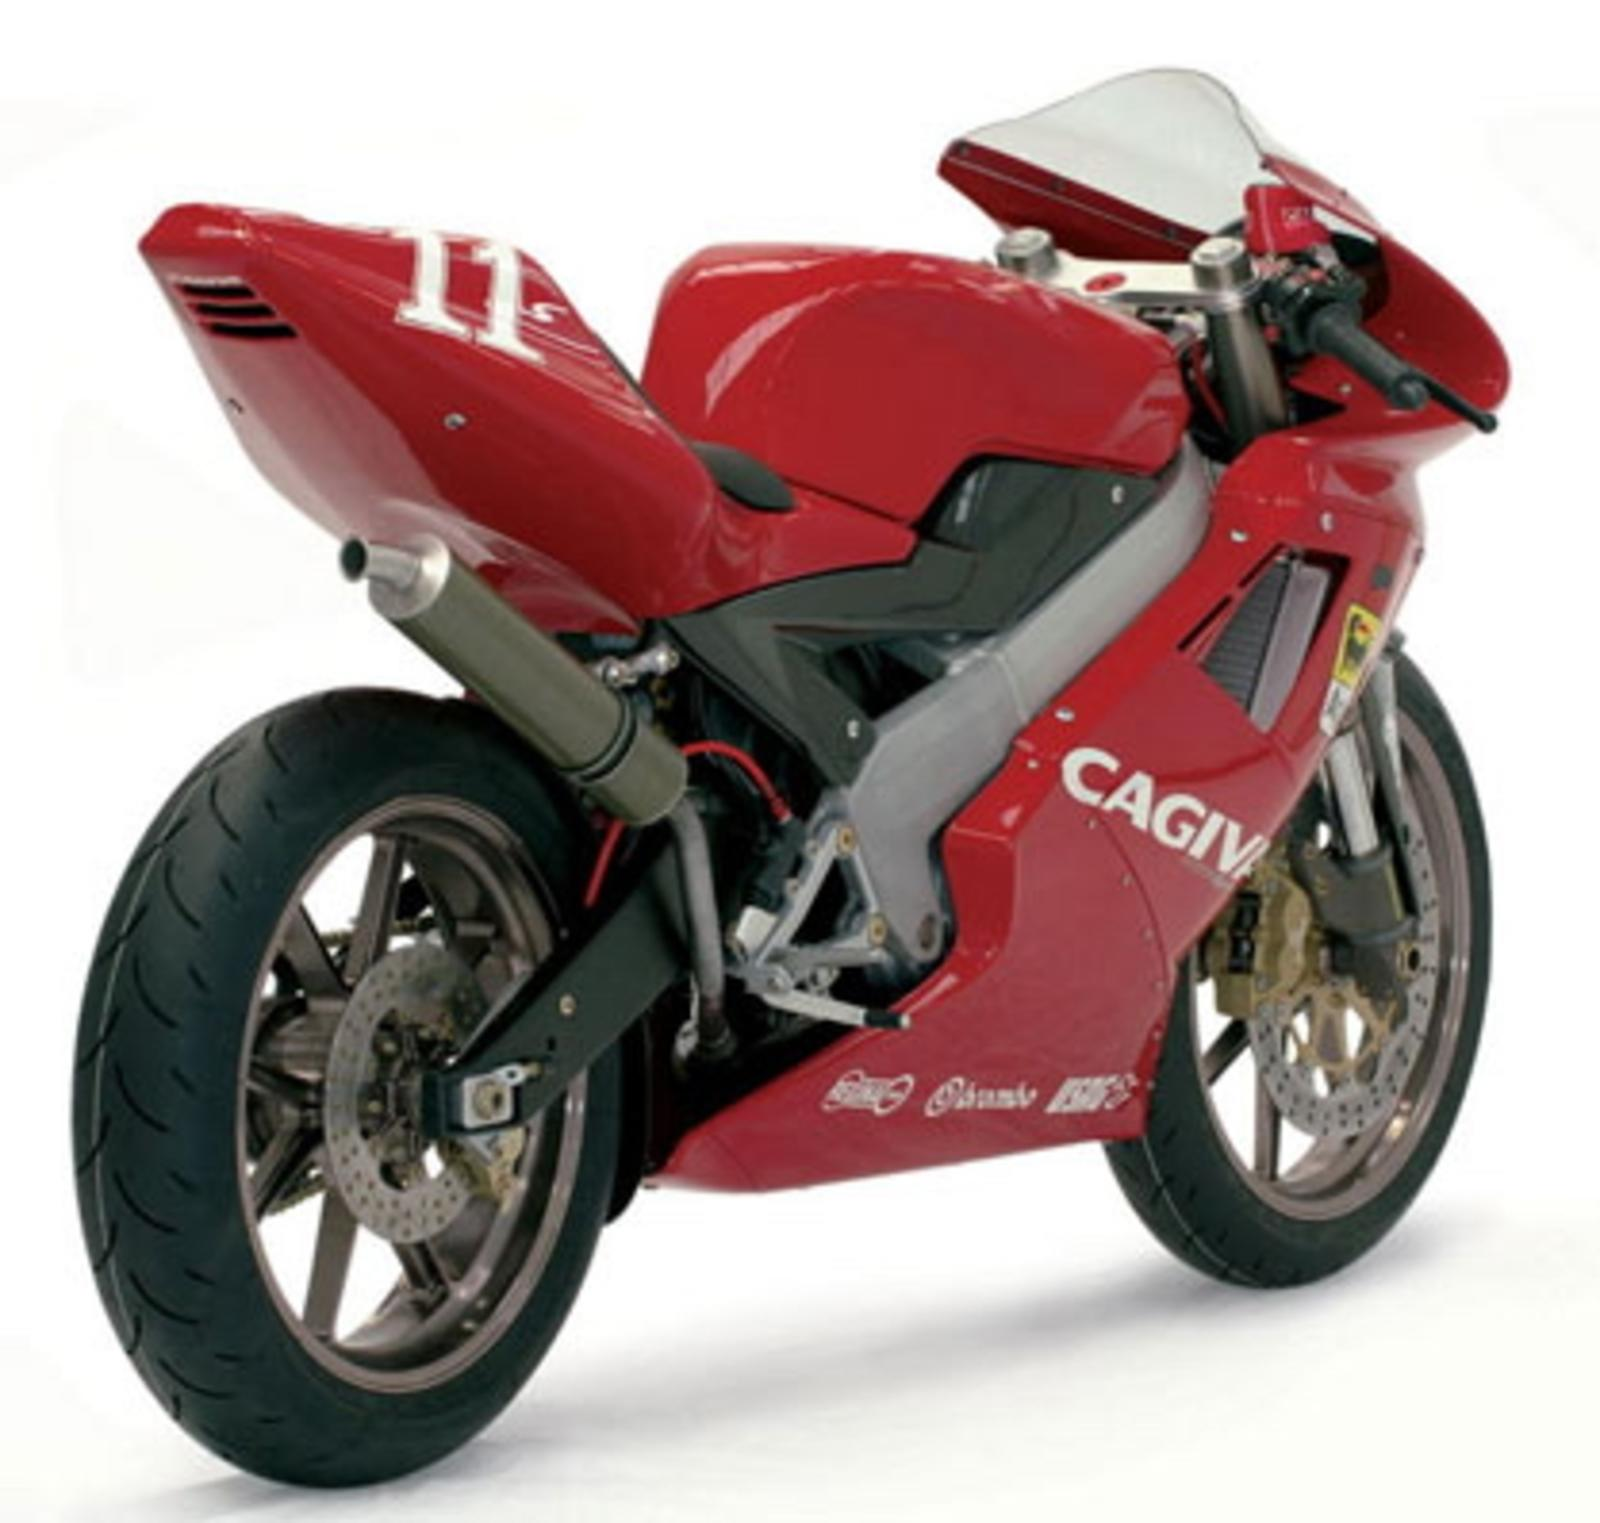 Cagiva mito photo - 6